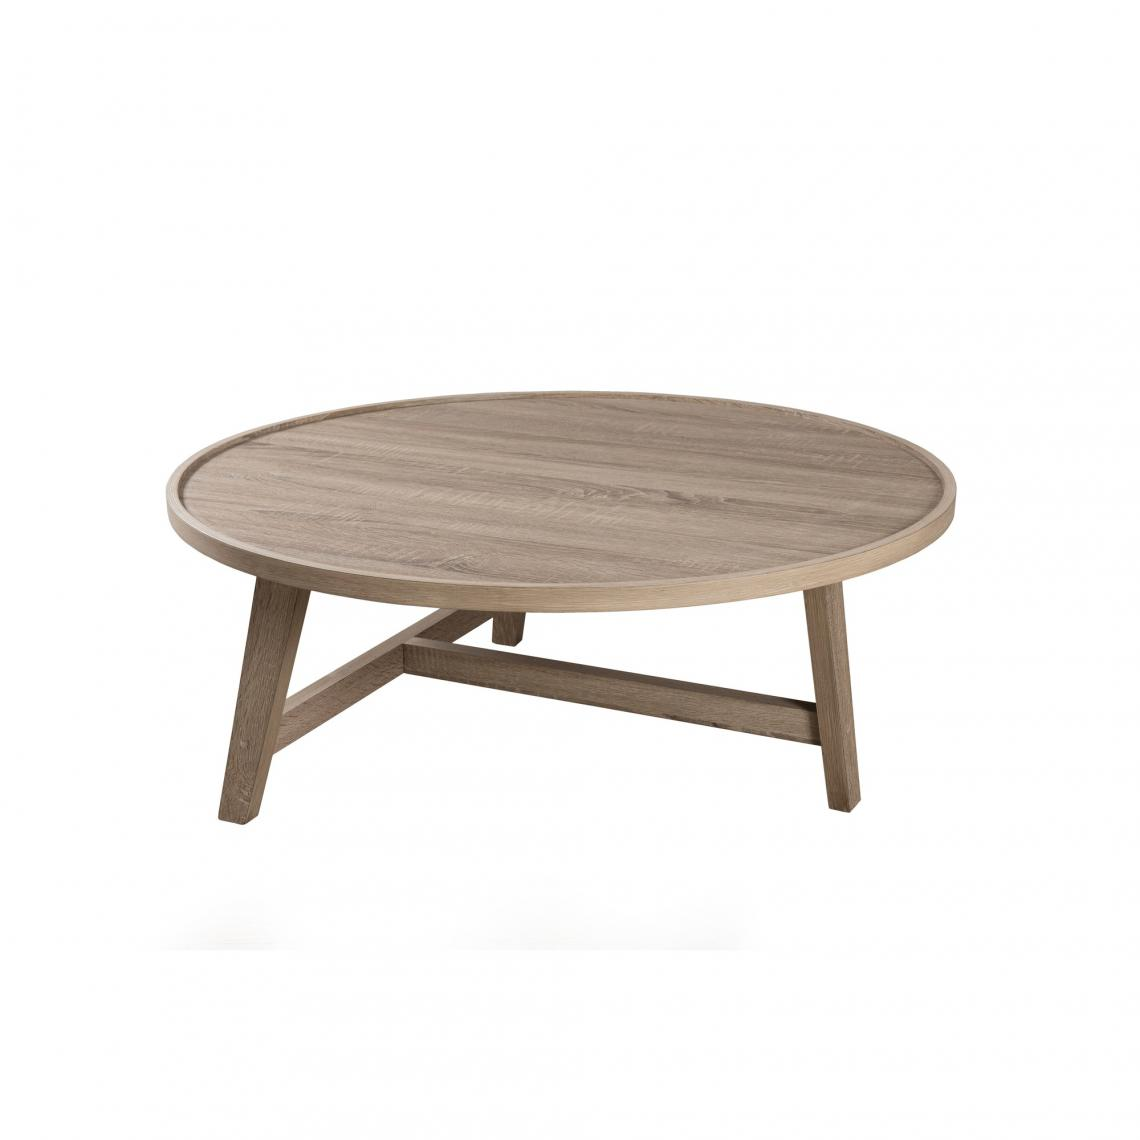 Blanc3 Bois Table Basse Ronde Suisses Pieds H9WED2I